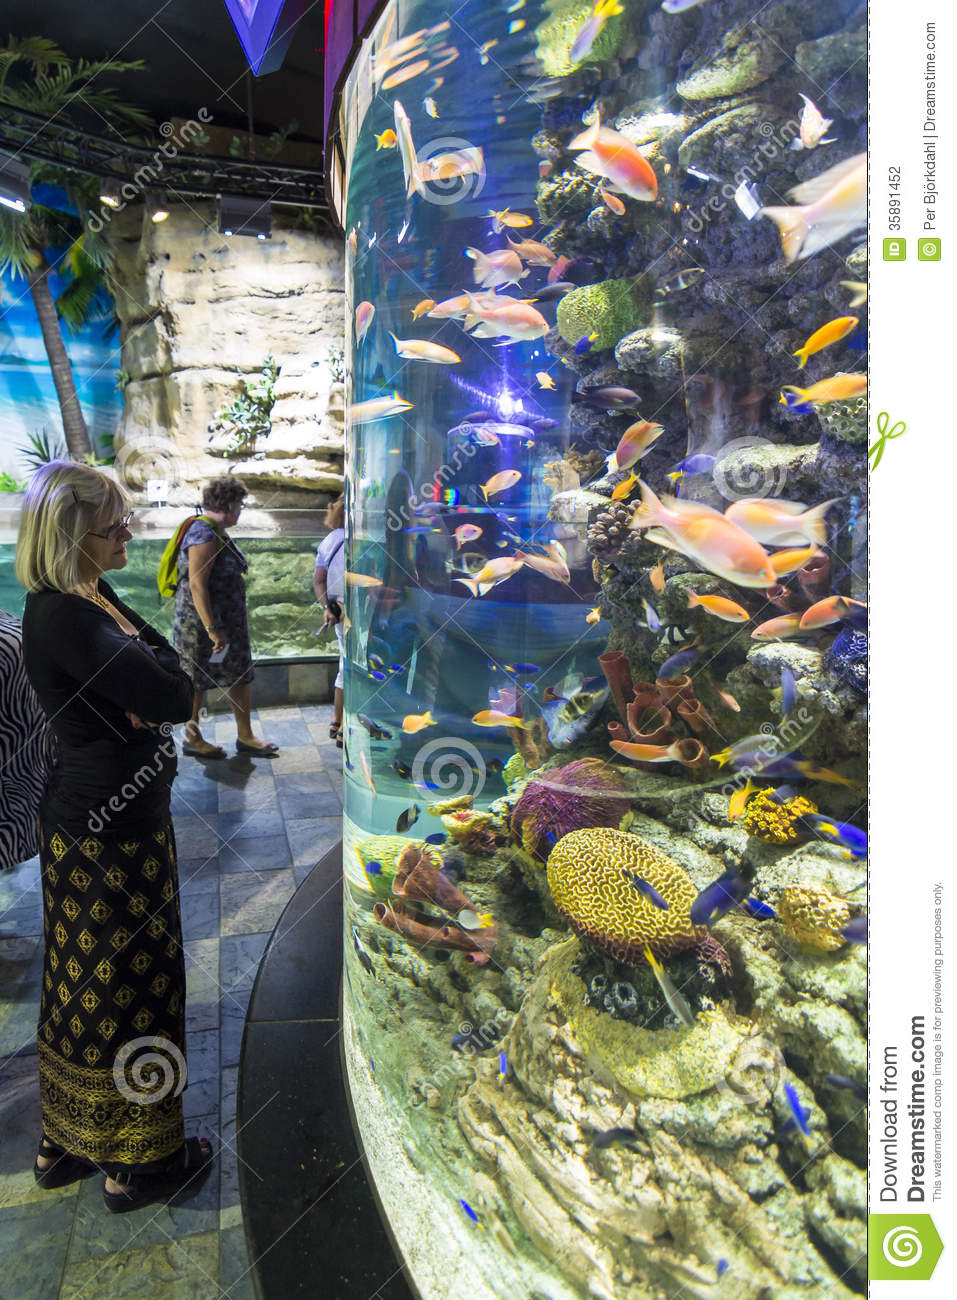 Freshwater Aquarium Fish In Dubai - Woman watching aquarium dubai editorial photography